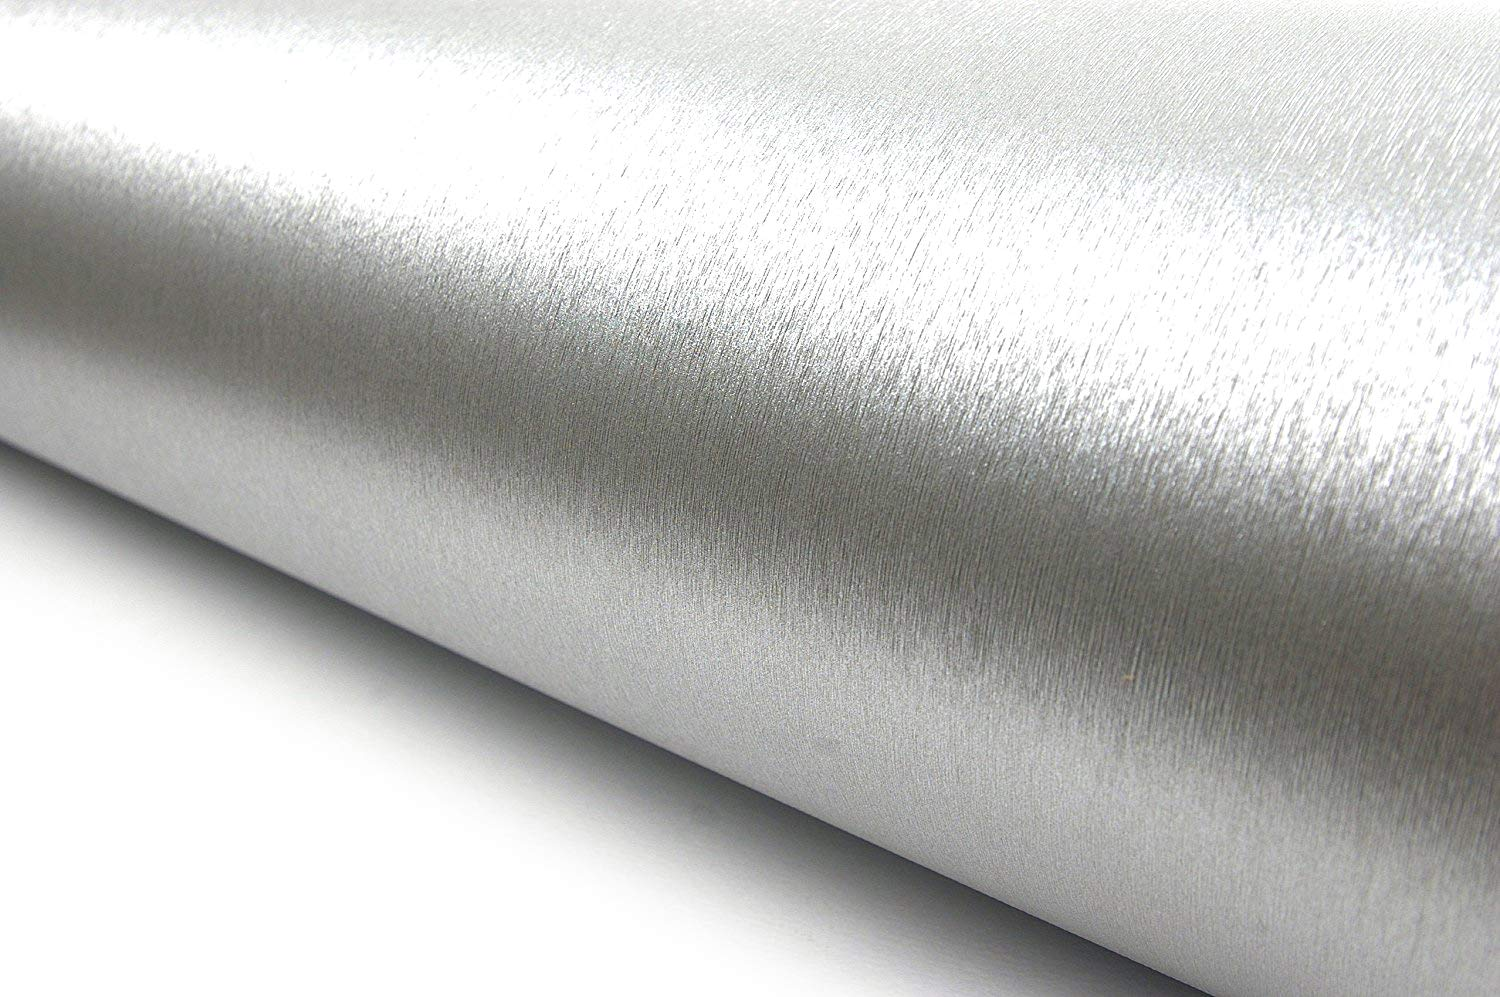 Very Berry Sticker Brushed Metal Texture Interior Film Vinyl Self Adhesive Peel-Stick Removable (Silver)